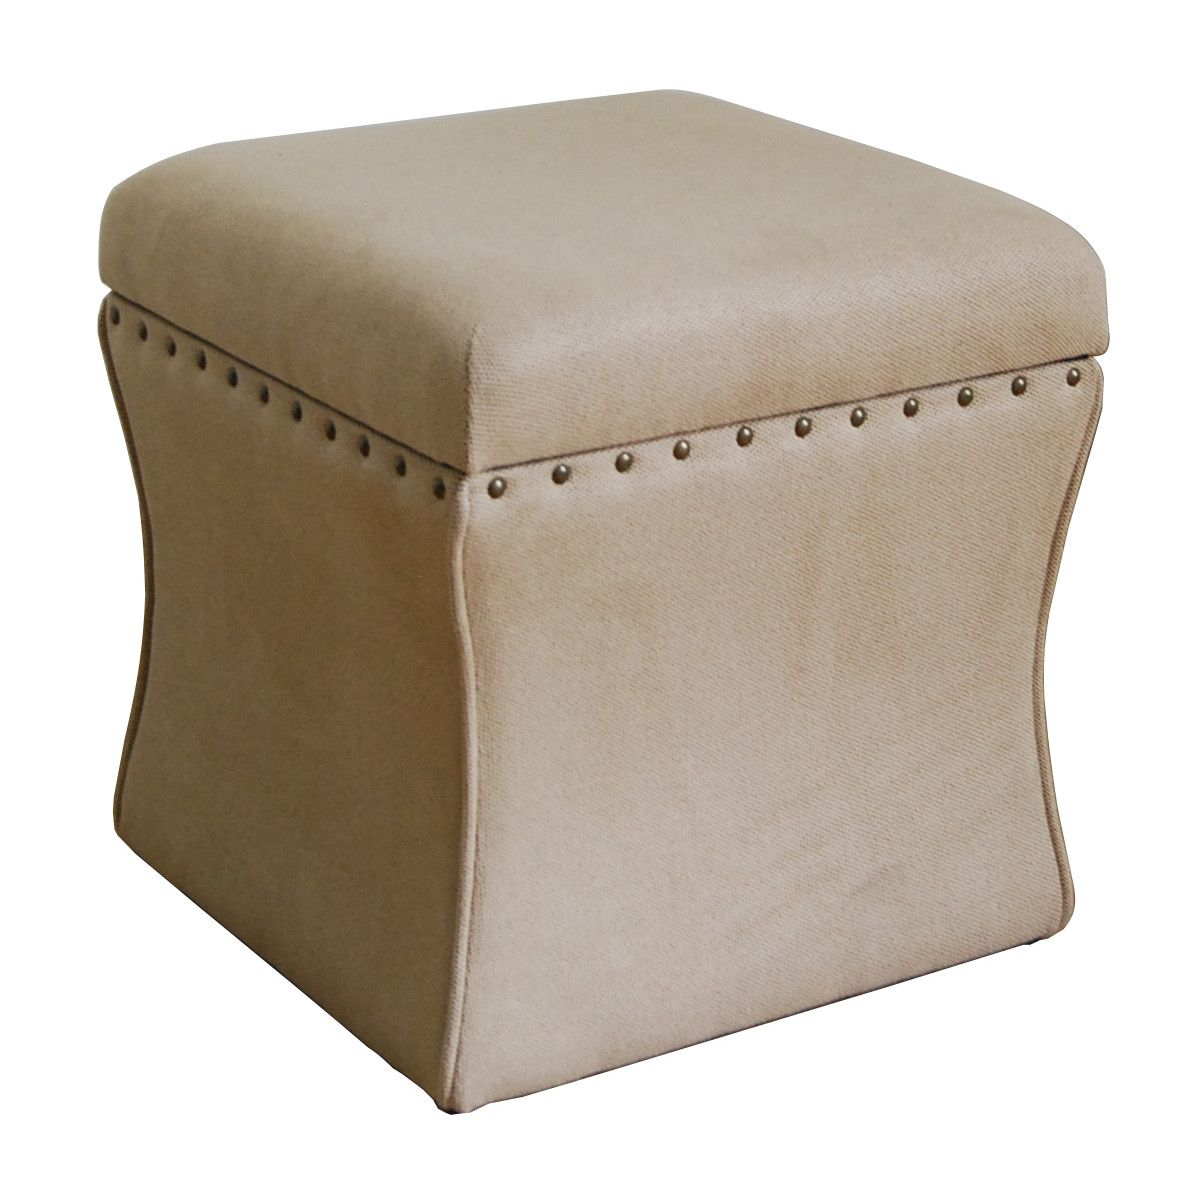 Exceptional HomePop Cinch Upholstered Storage Cube Ottoman. Great For Extra Storage In  Your Family Room!